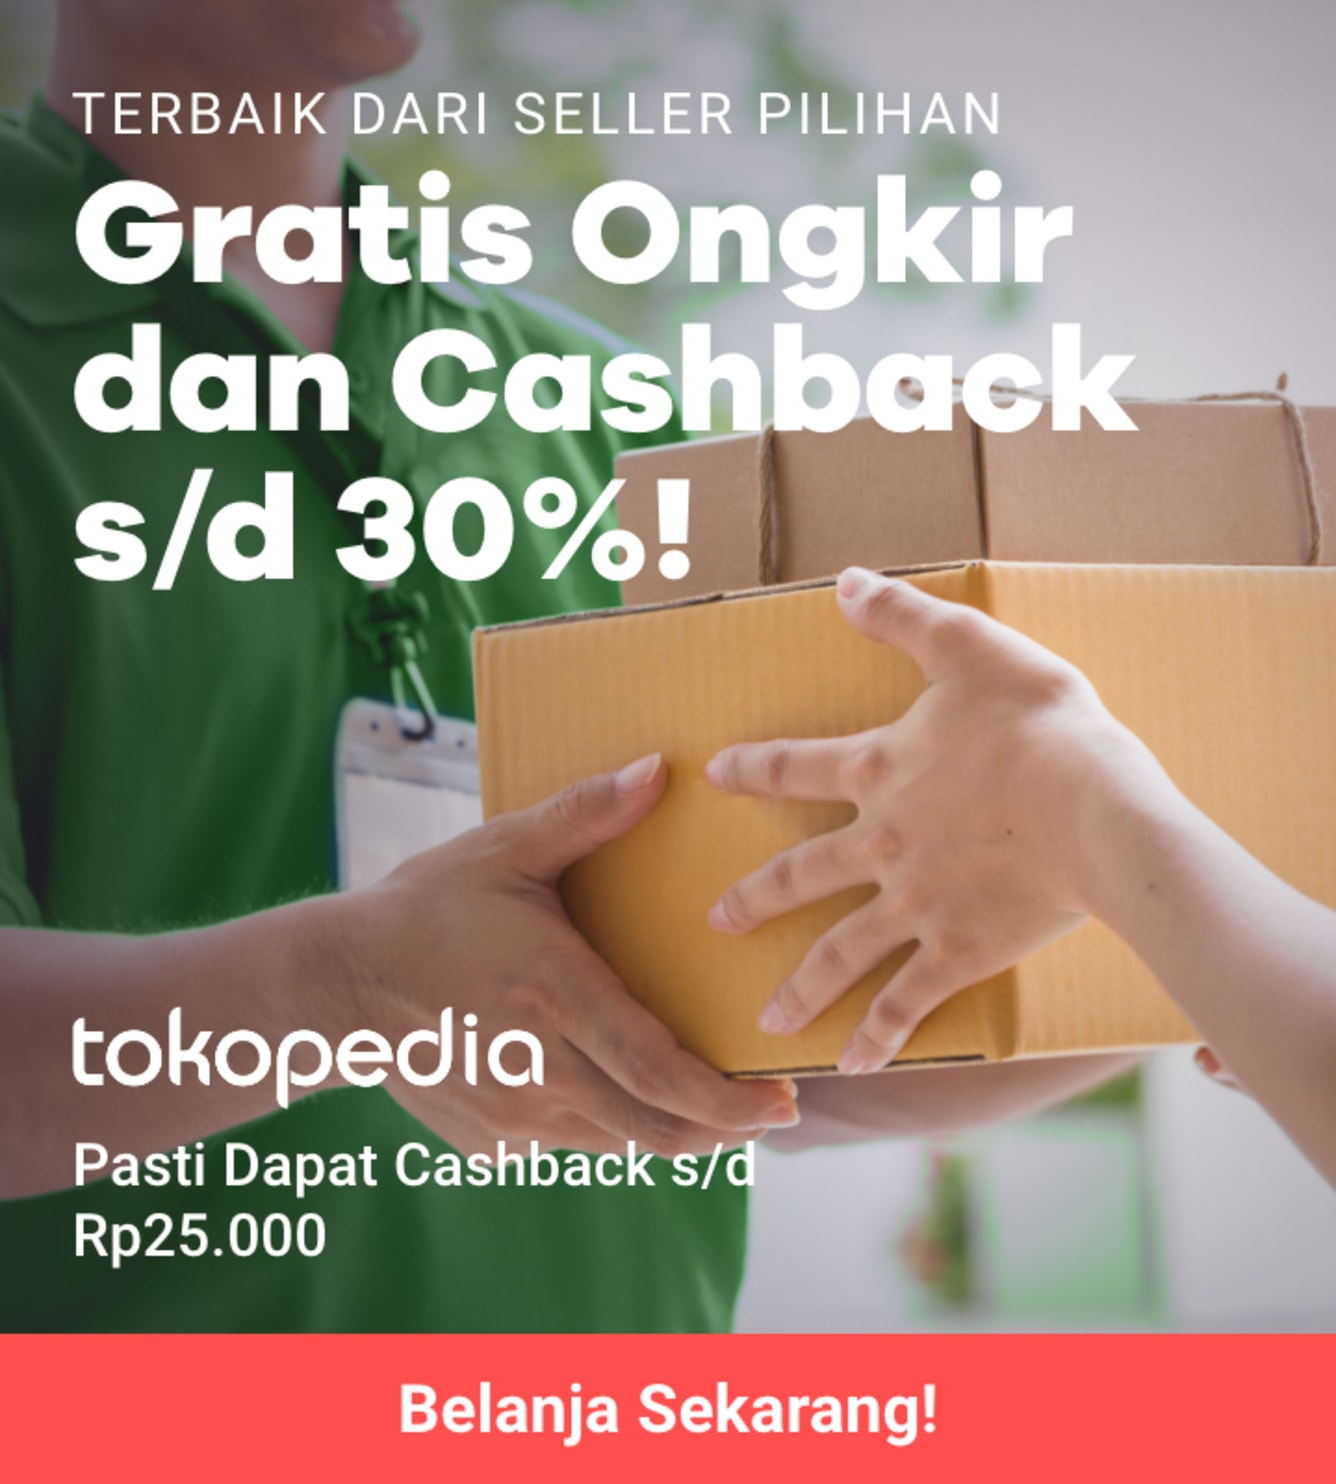 Week 29 - Promo Tokopedia RGX